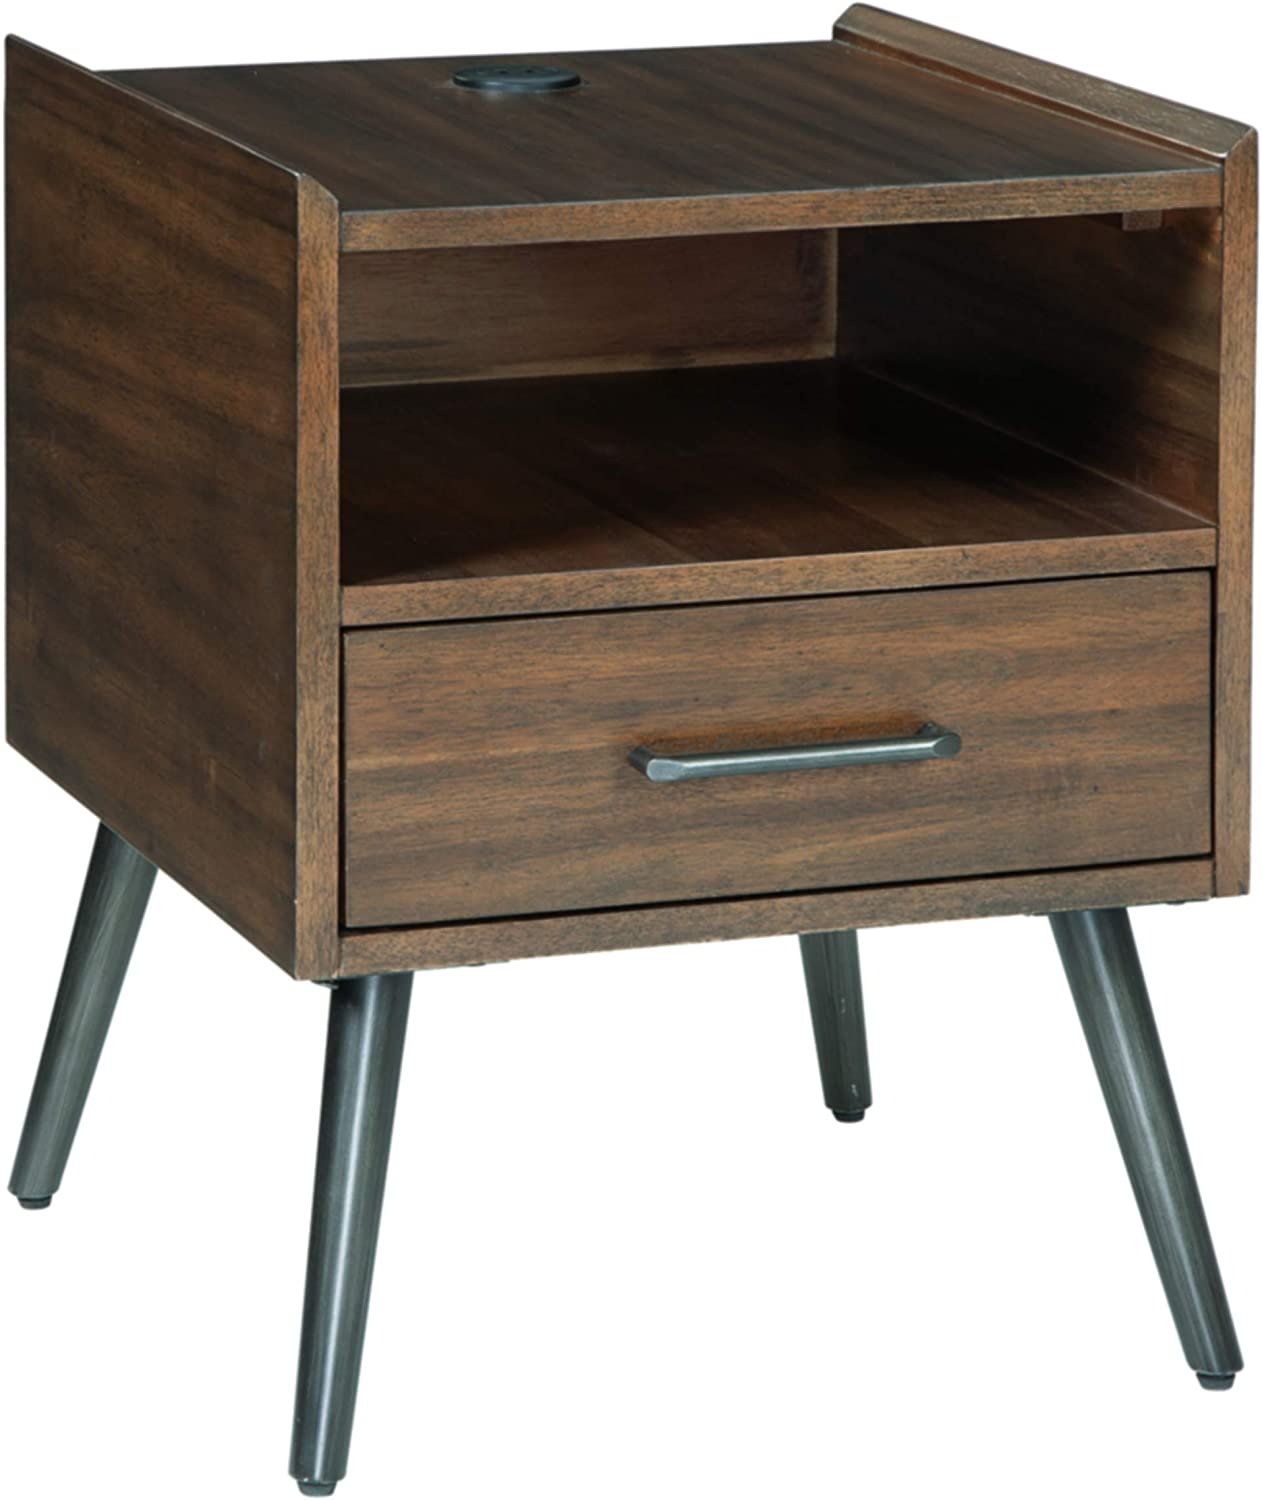 Signature Design Inexpensive by Ashley Store Calmoni End Square Mid-Century Table